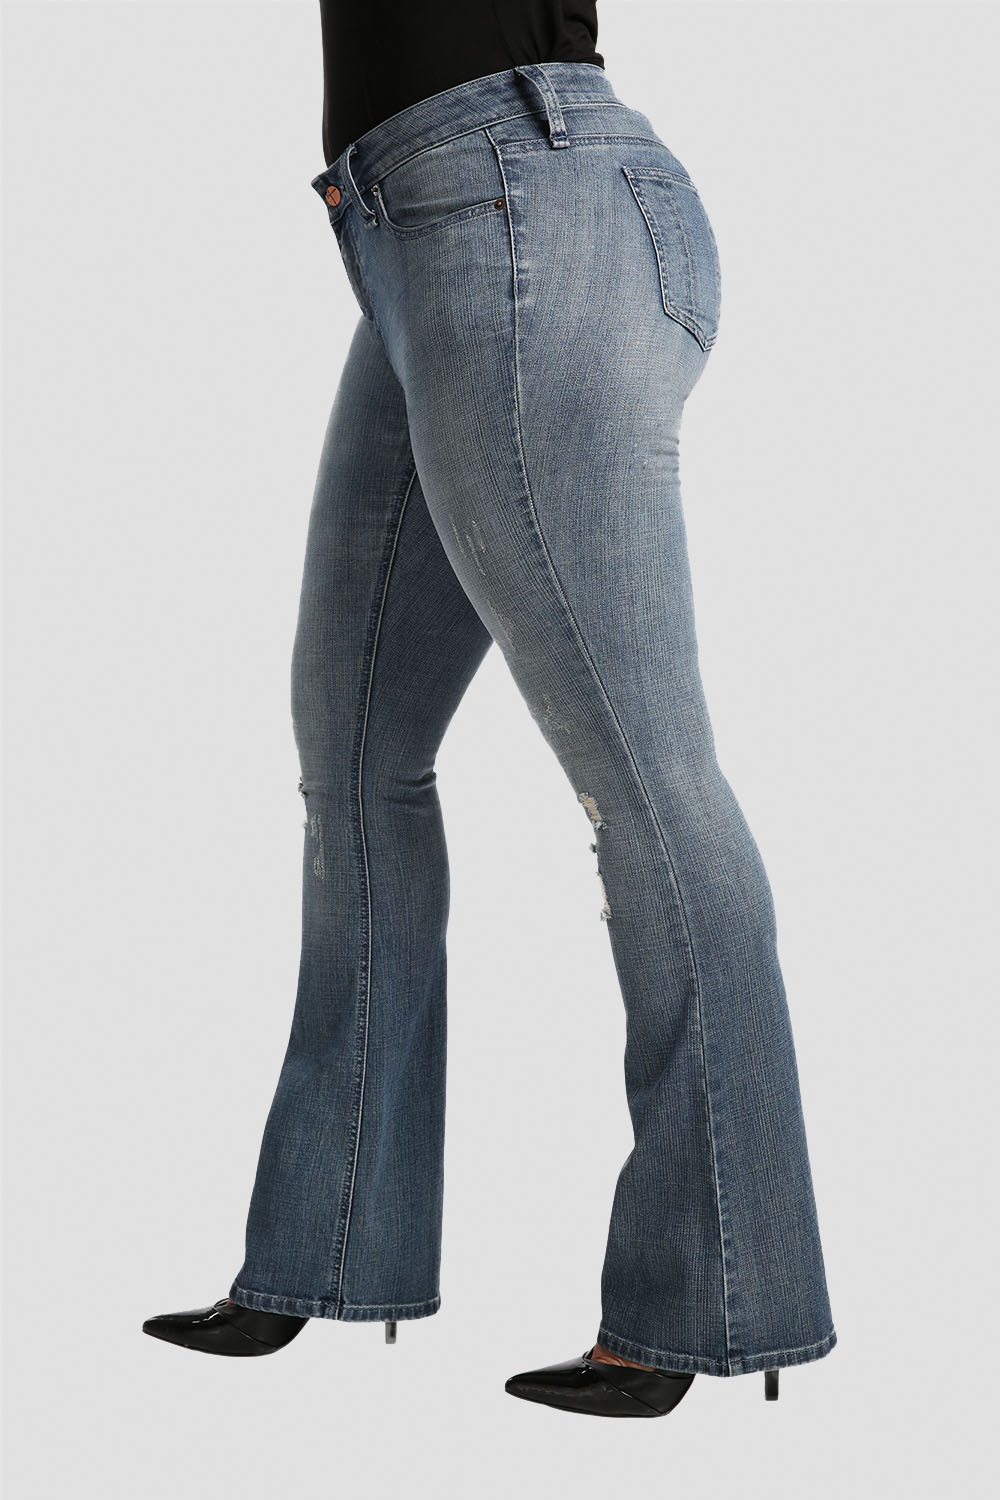 Plus Size Clarice Stretch Woven Boy Toy Midrise Bootcut Jeans